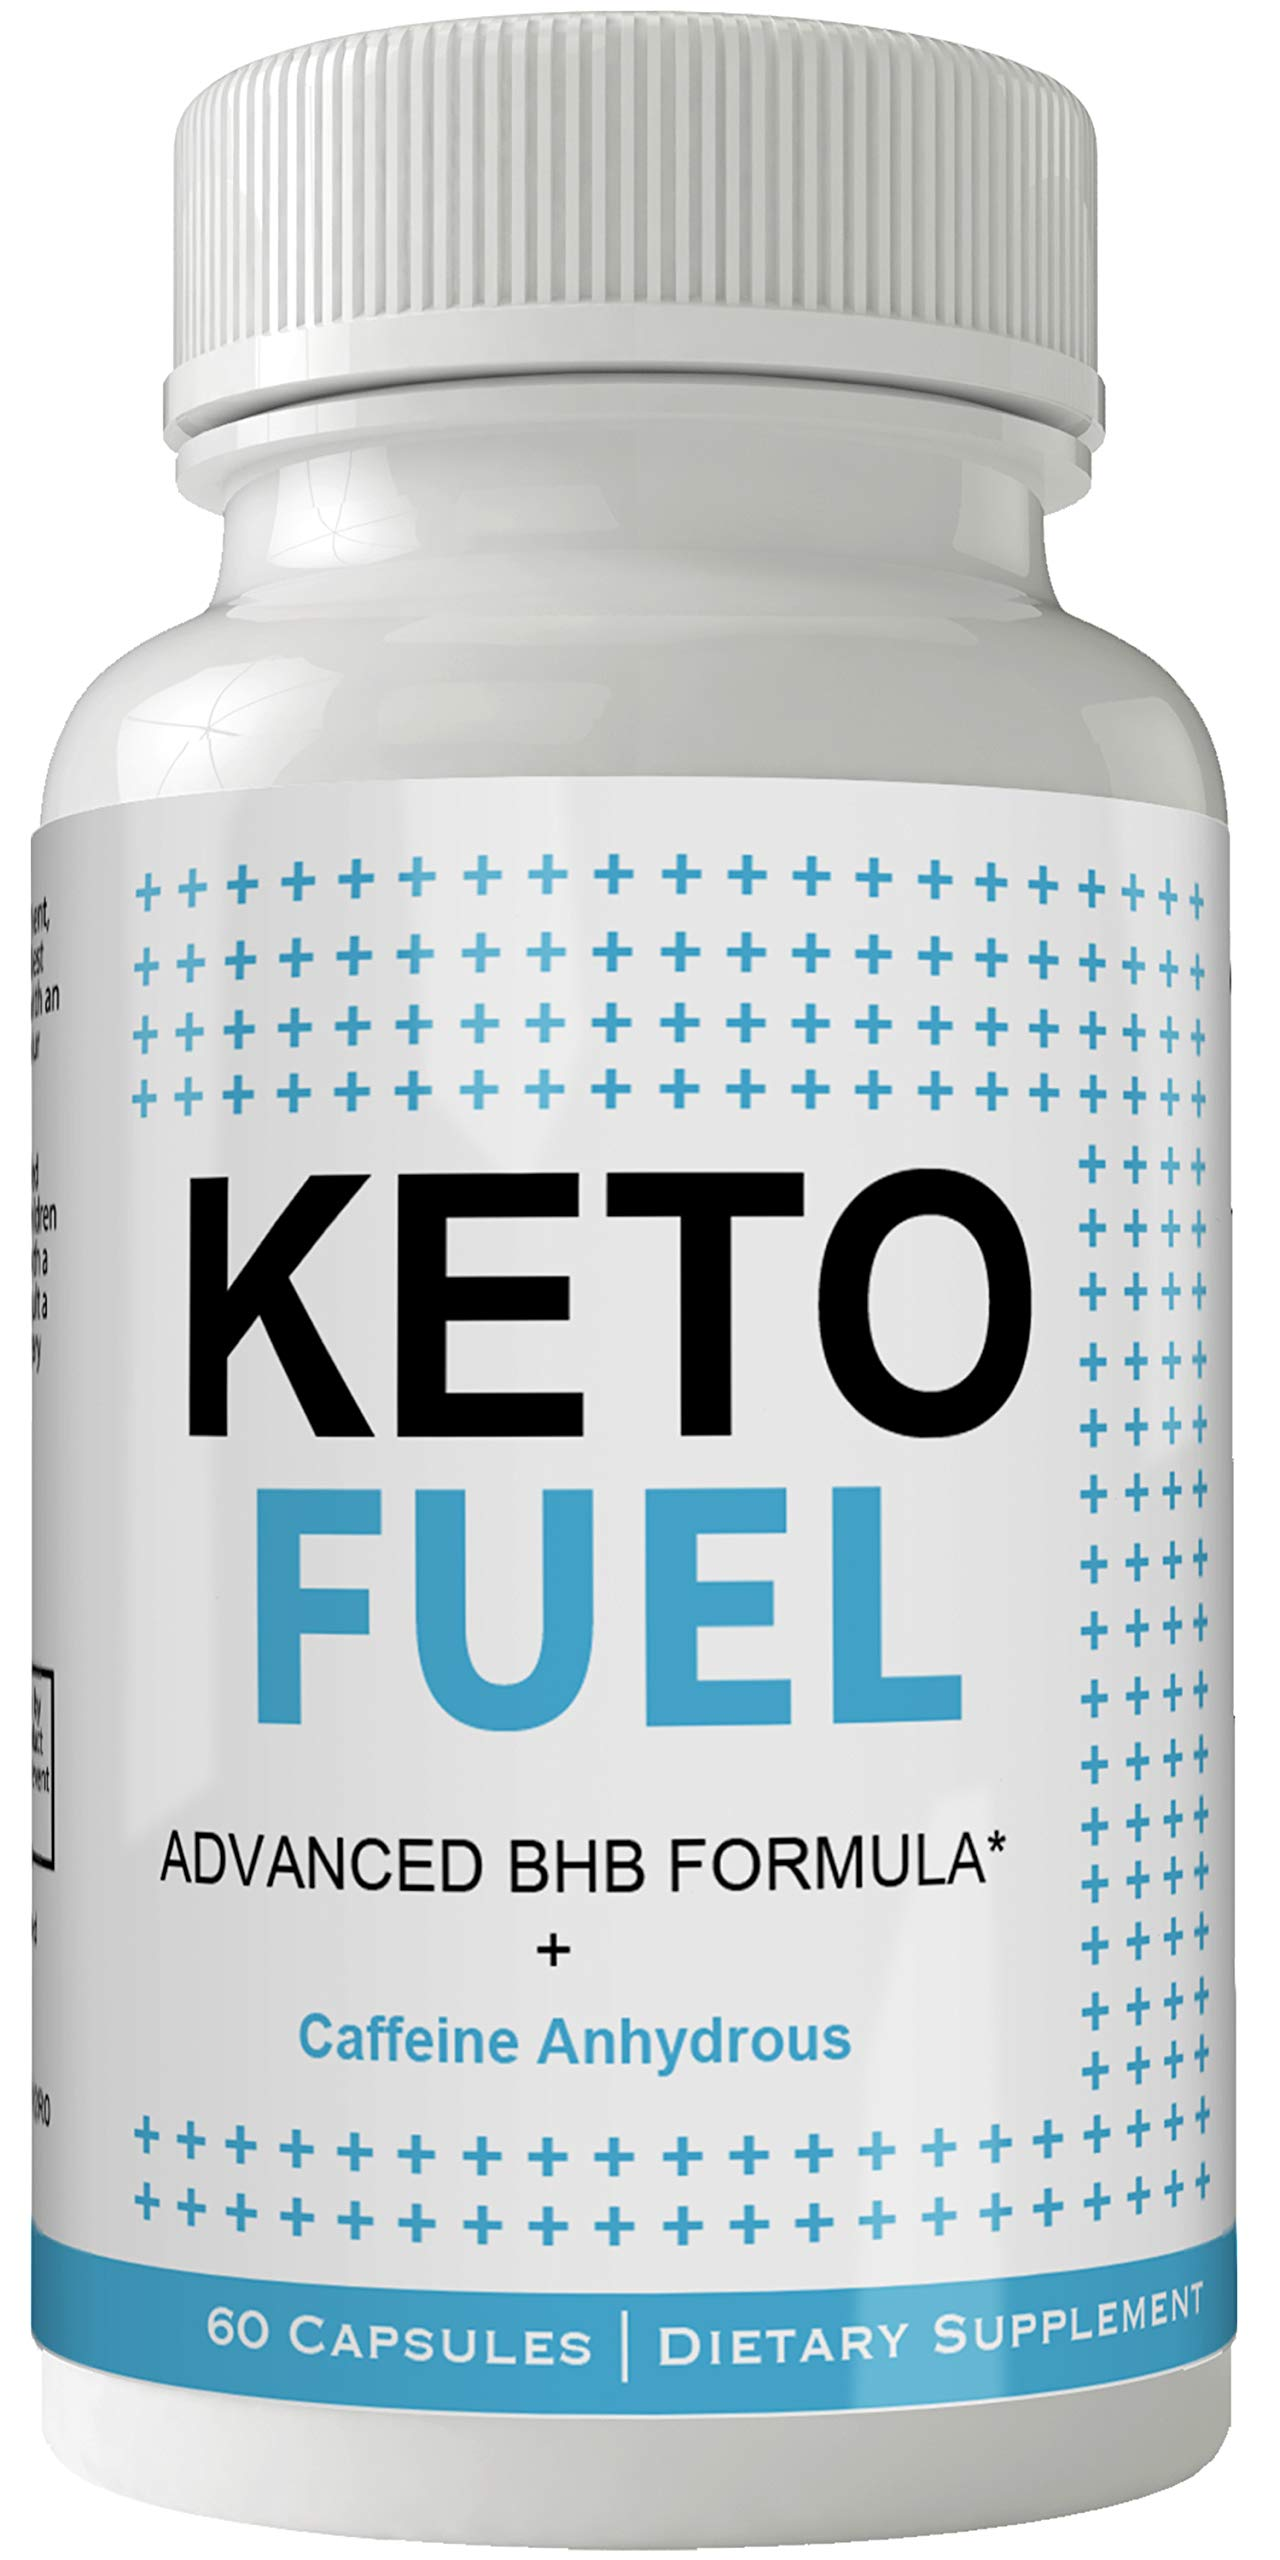 Keto Fuel Weight Loss Pills Advance Weight Loss Supplement Appetite Suppressant Natural Ketogenic 800 mg Formula with BHB Salts Ketone Diet Capsules to Boost Metabolism, Energy and Focus by nutra4health LLC (Image #1)